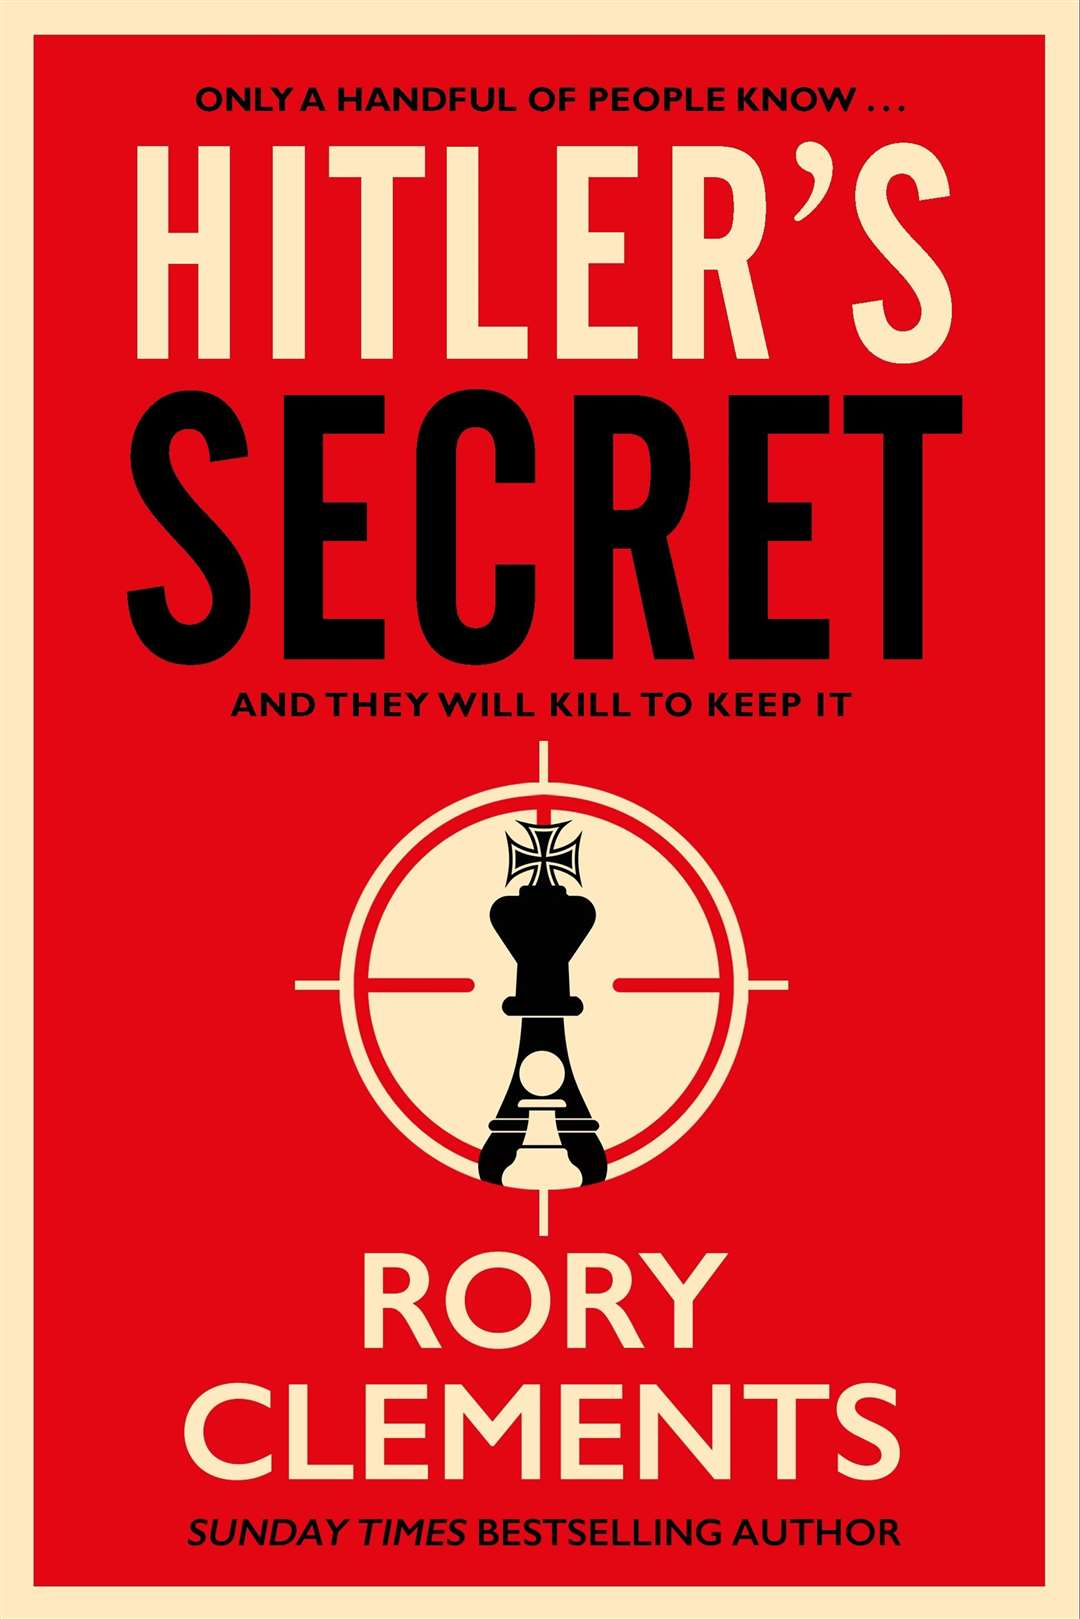 Rory Clements' novel Hitler's Secret (27523499)